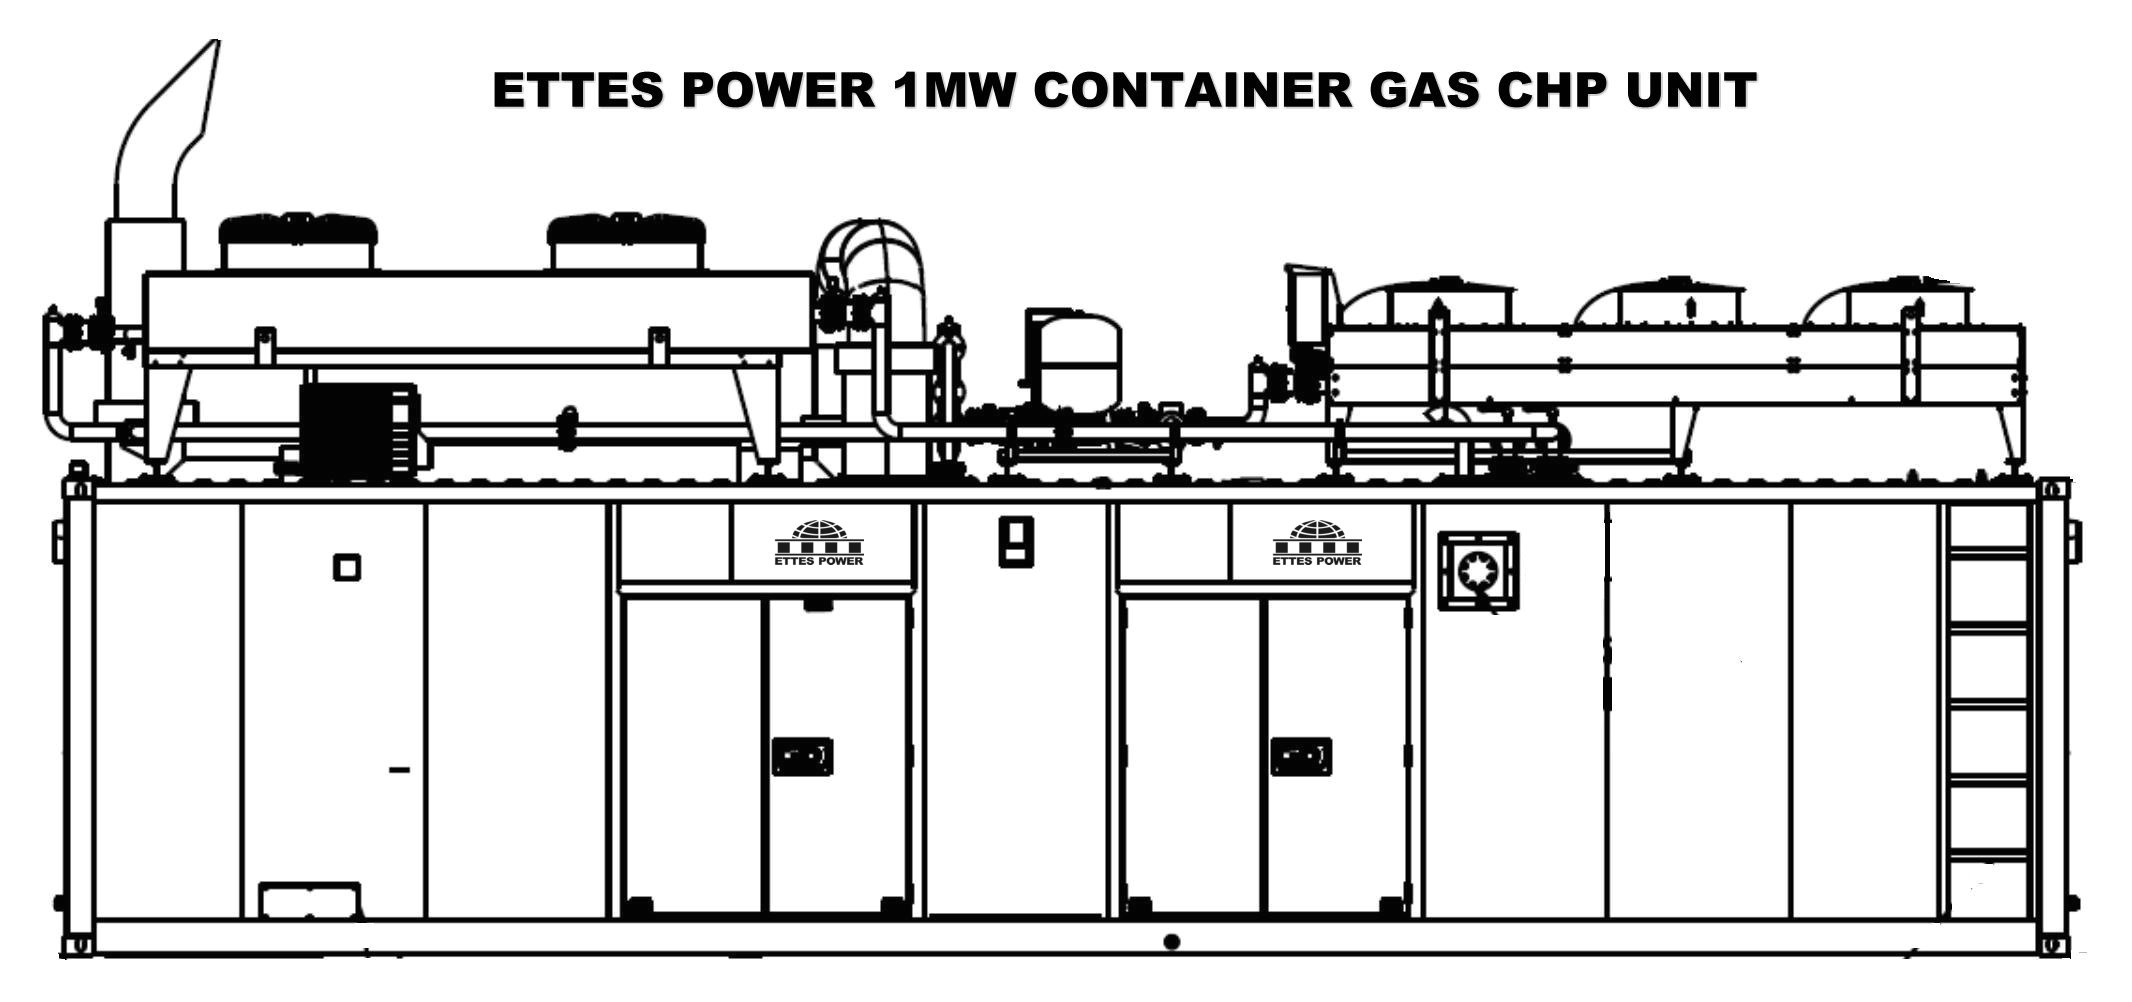 ETTES POWER GAS GENERATING SETS HOT FEATURED PRODUCTS